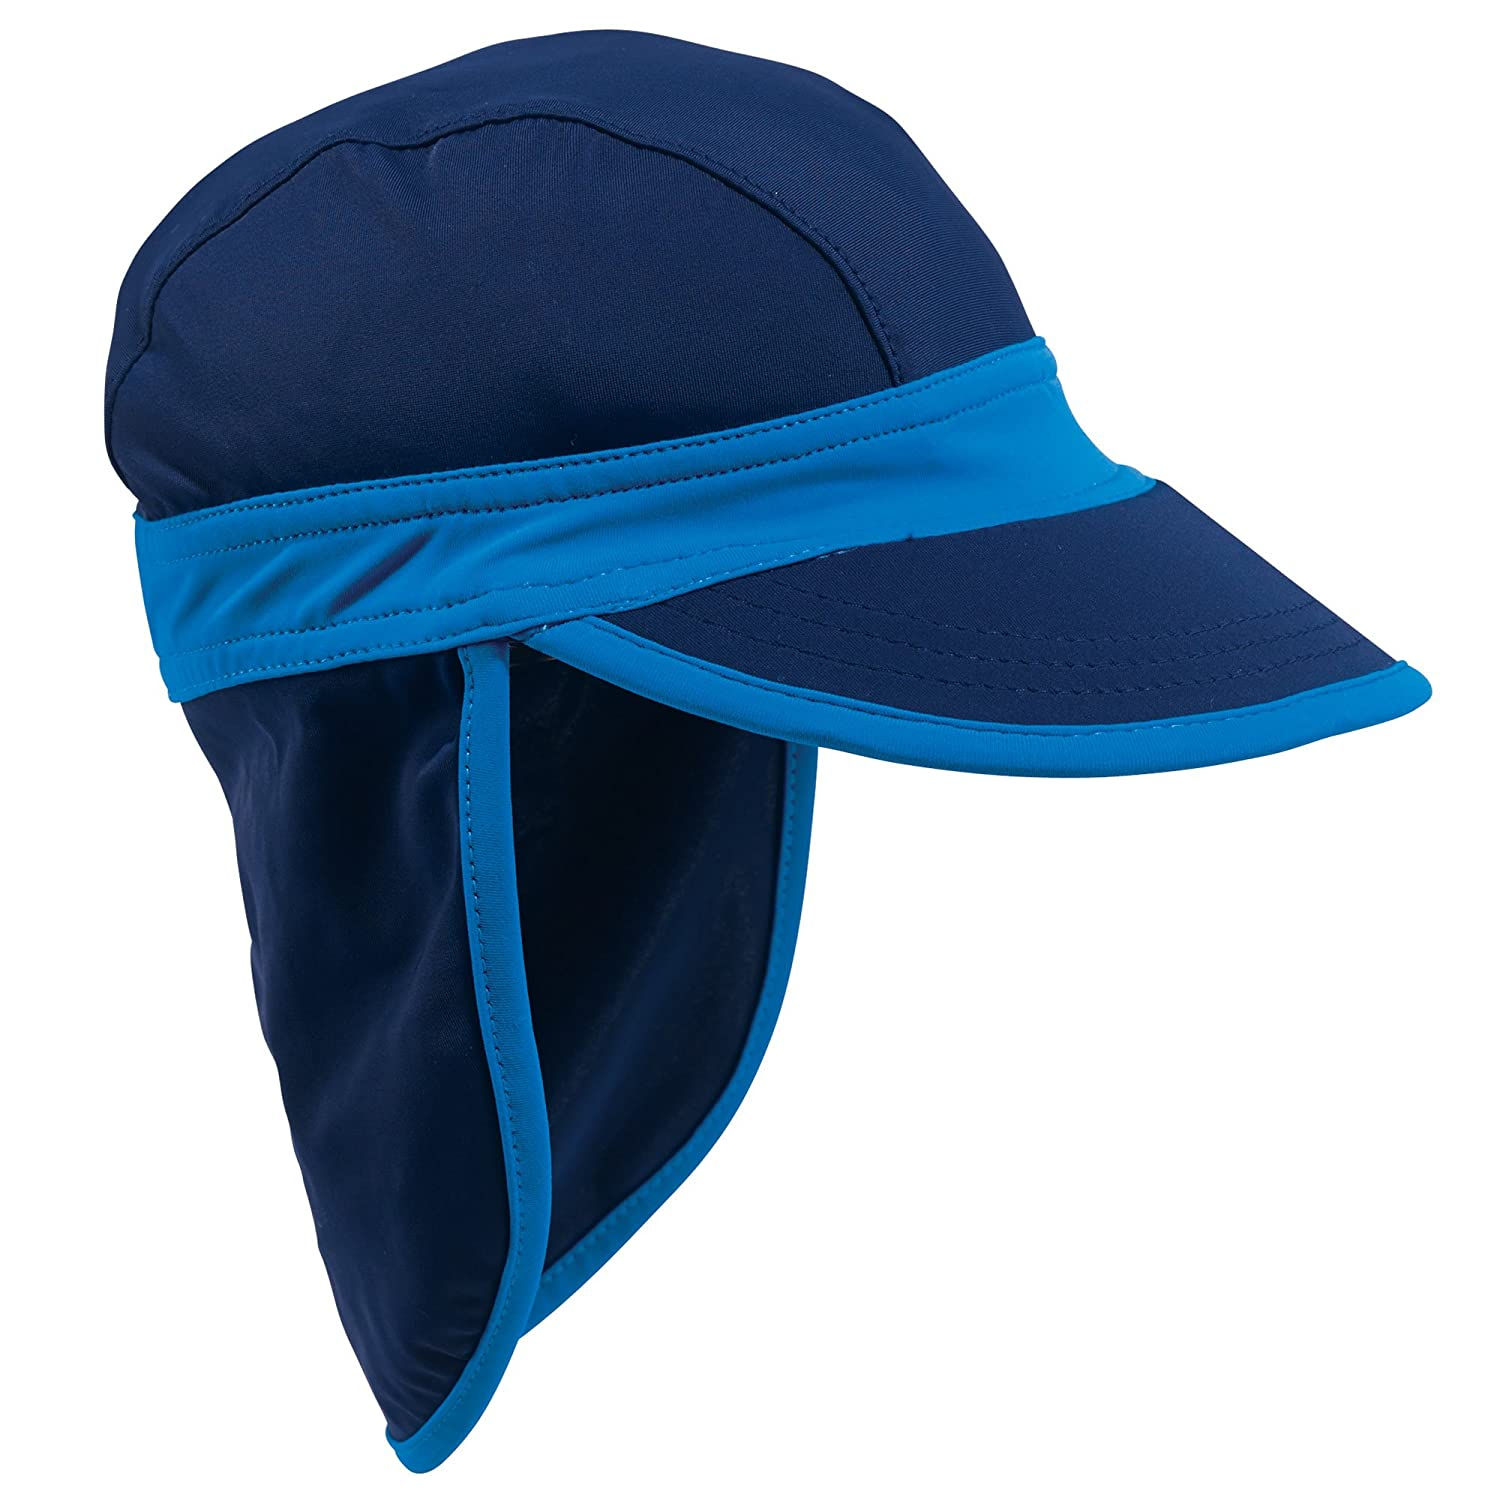 Amazon Navy Blue Baby Sun Hat with UPF50 Sun Protection by Sun